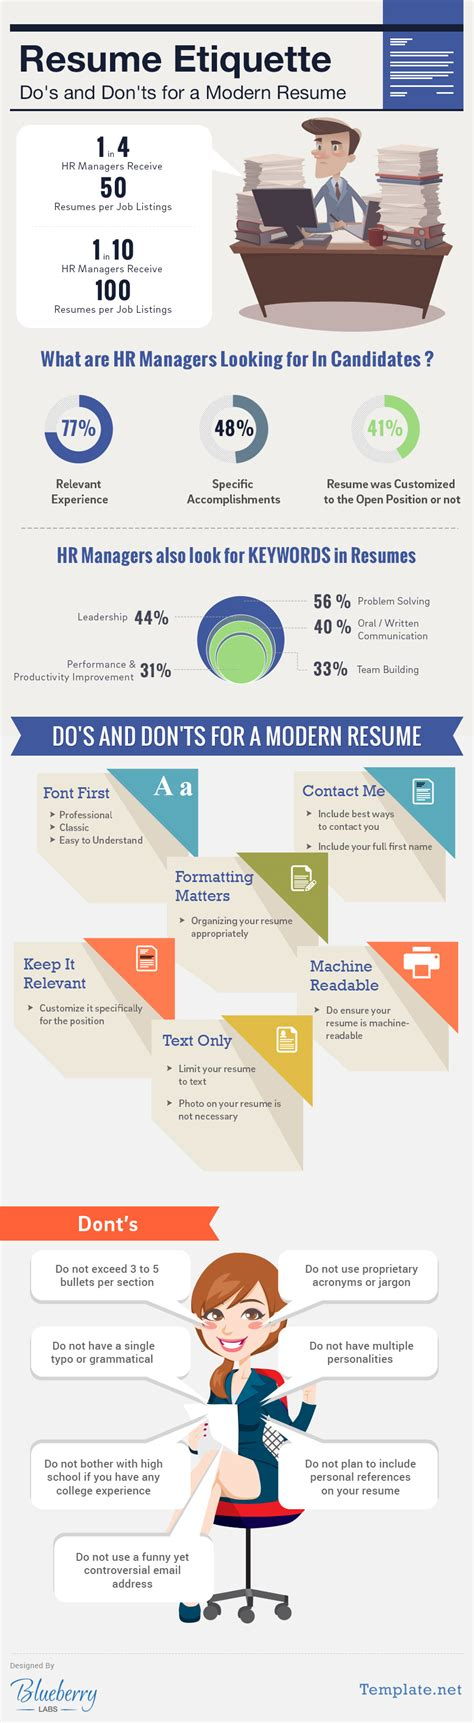 resume etiquette do s and don ts for a modern resume